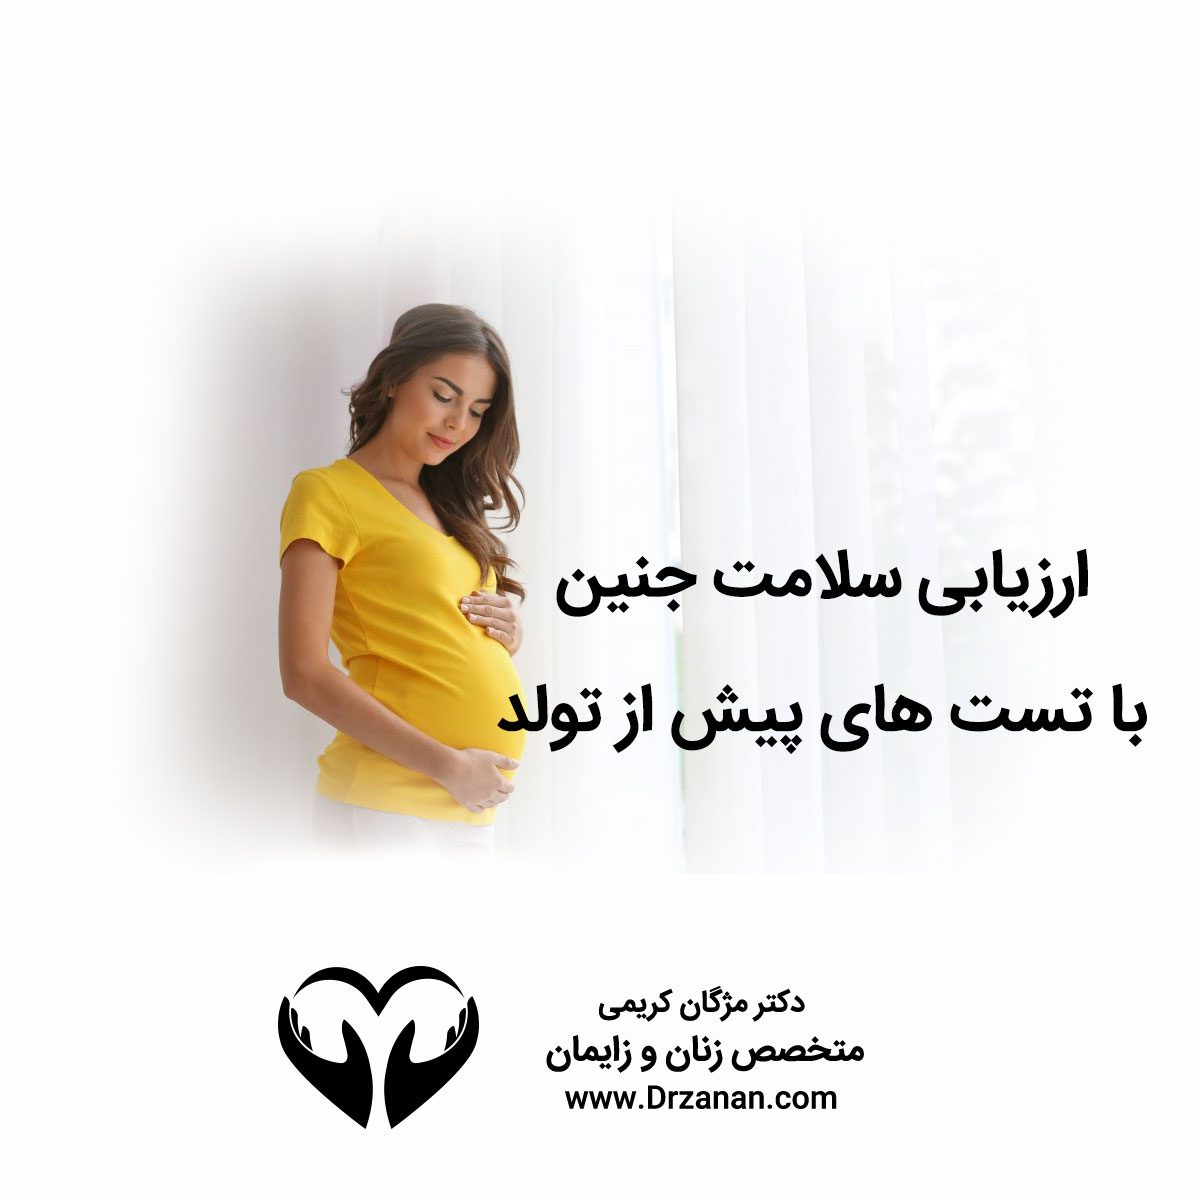 assessing-the-health-of-the-fetus-with-prenatal-tests-1200x1200.jpg